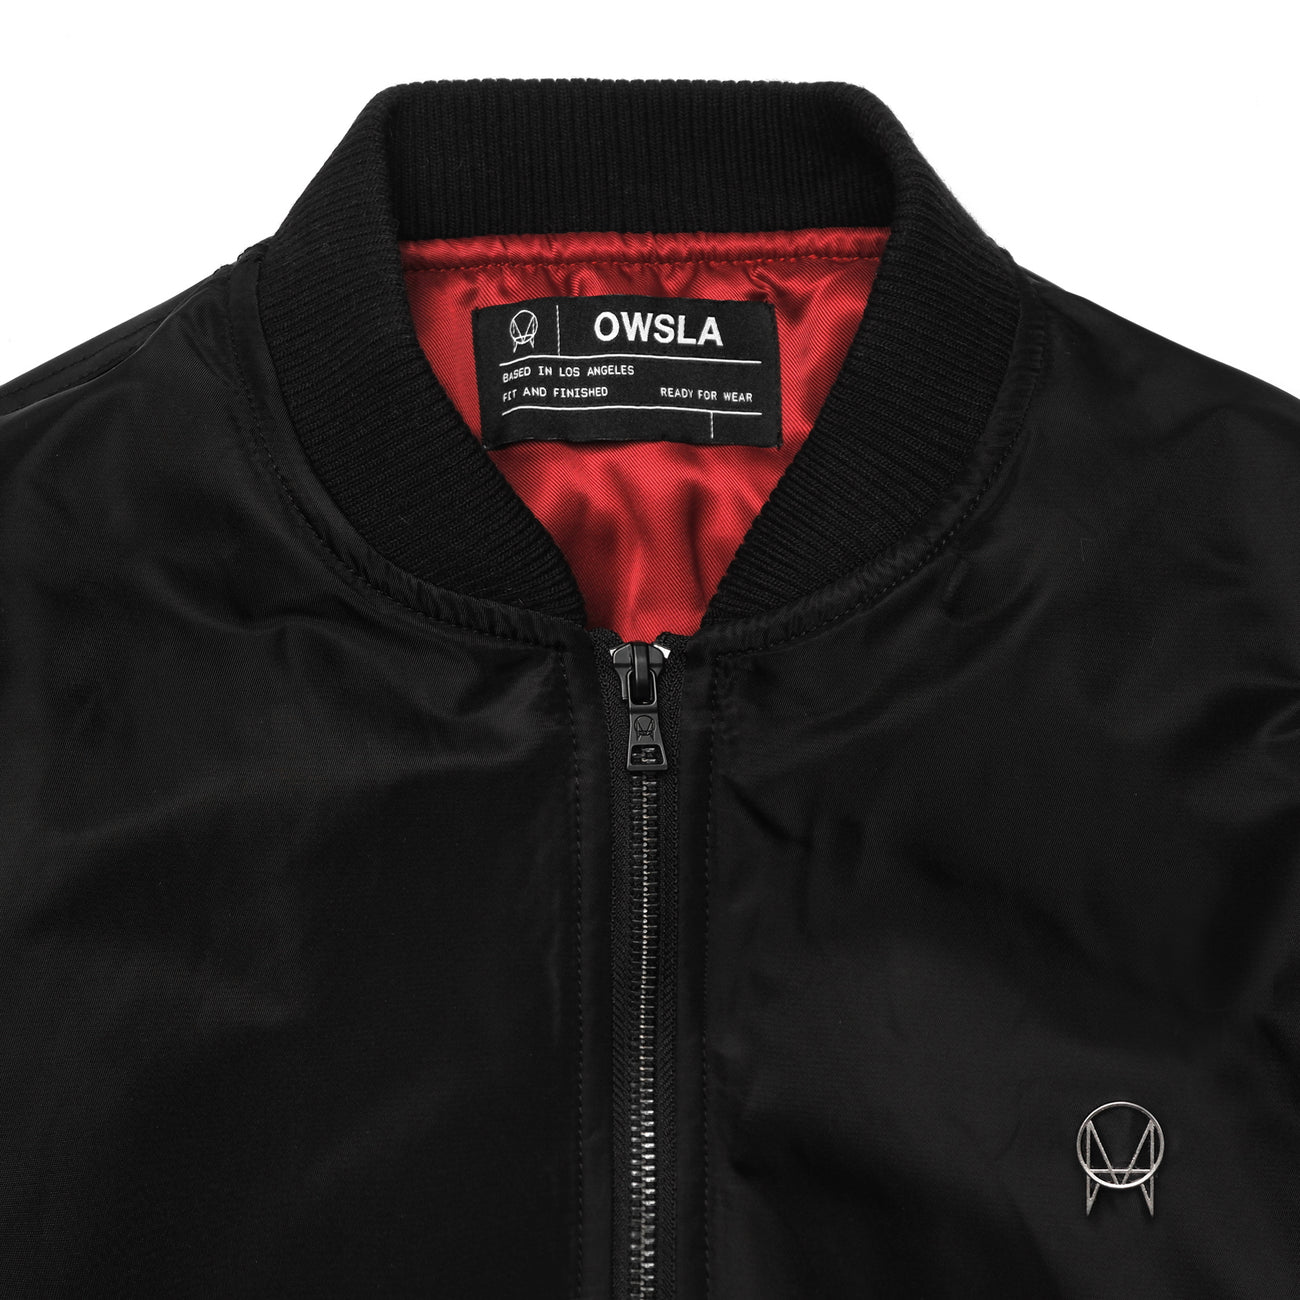 OWSLA M1 BOMBER JACKET - BLACK